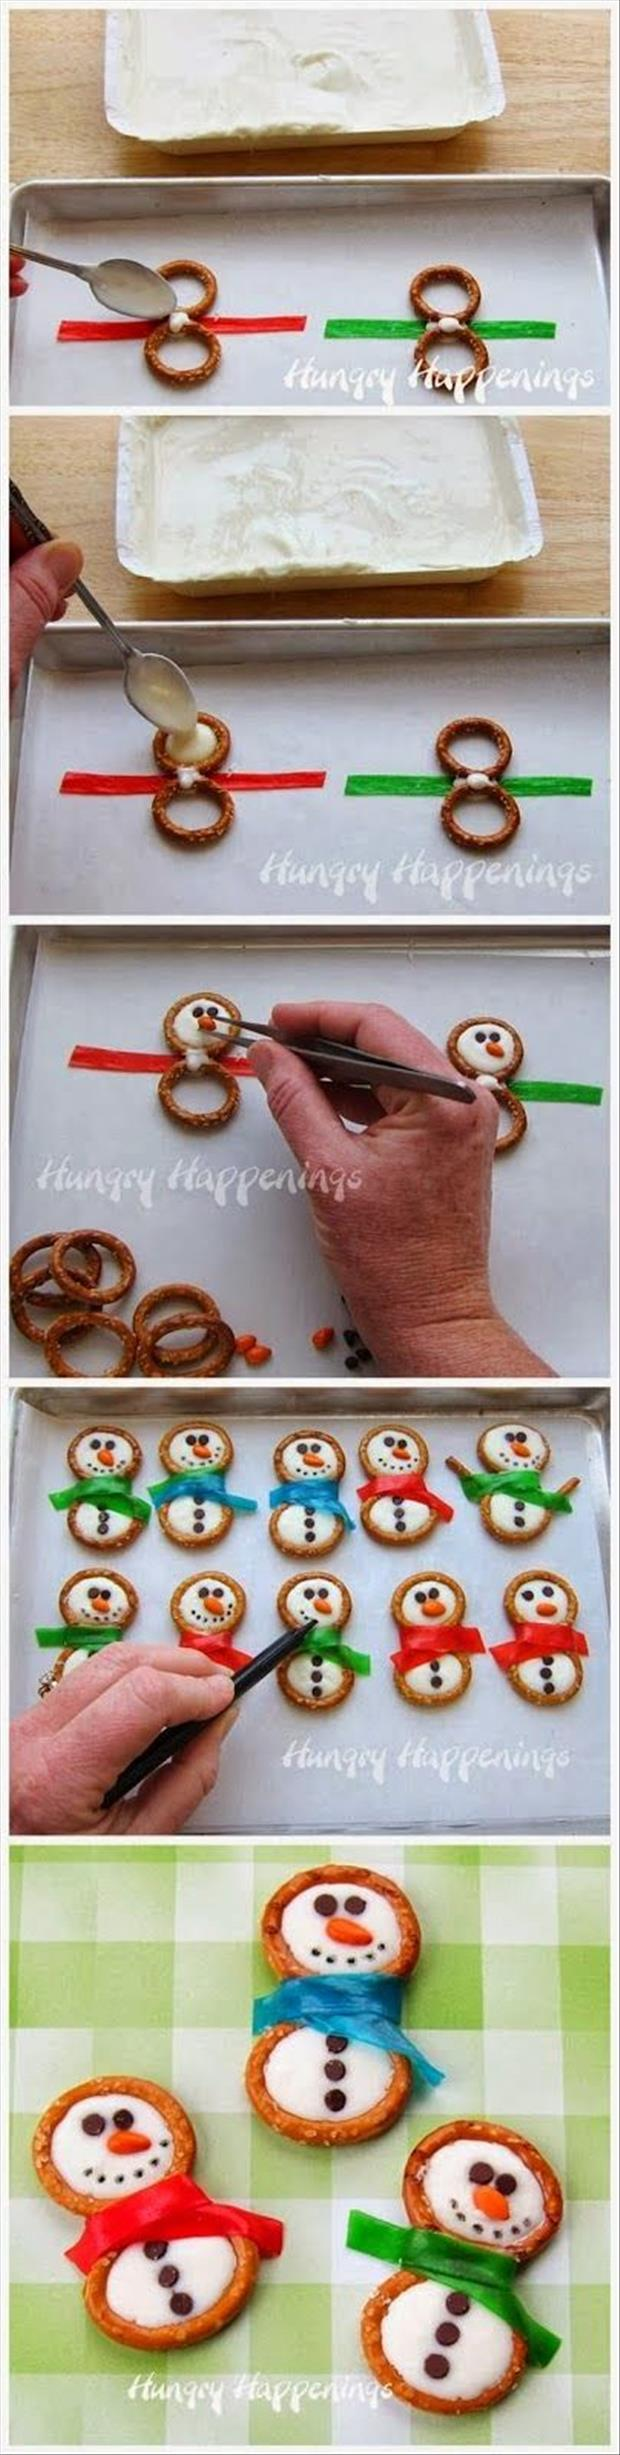 christmas crafts (5)